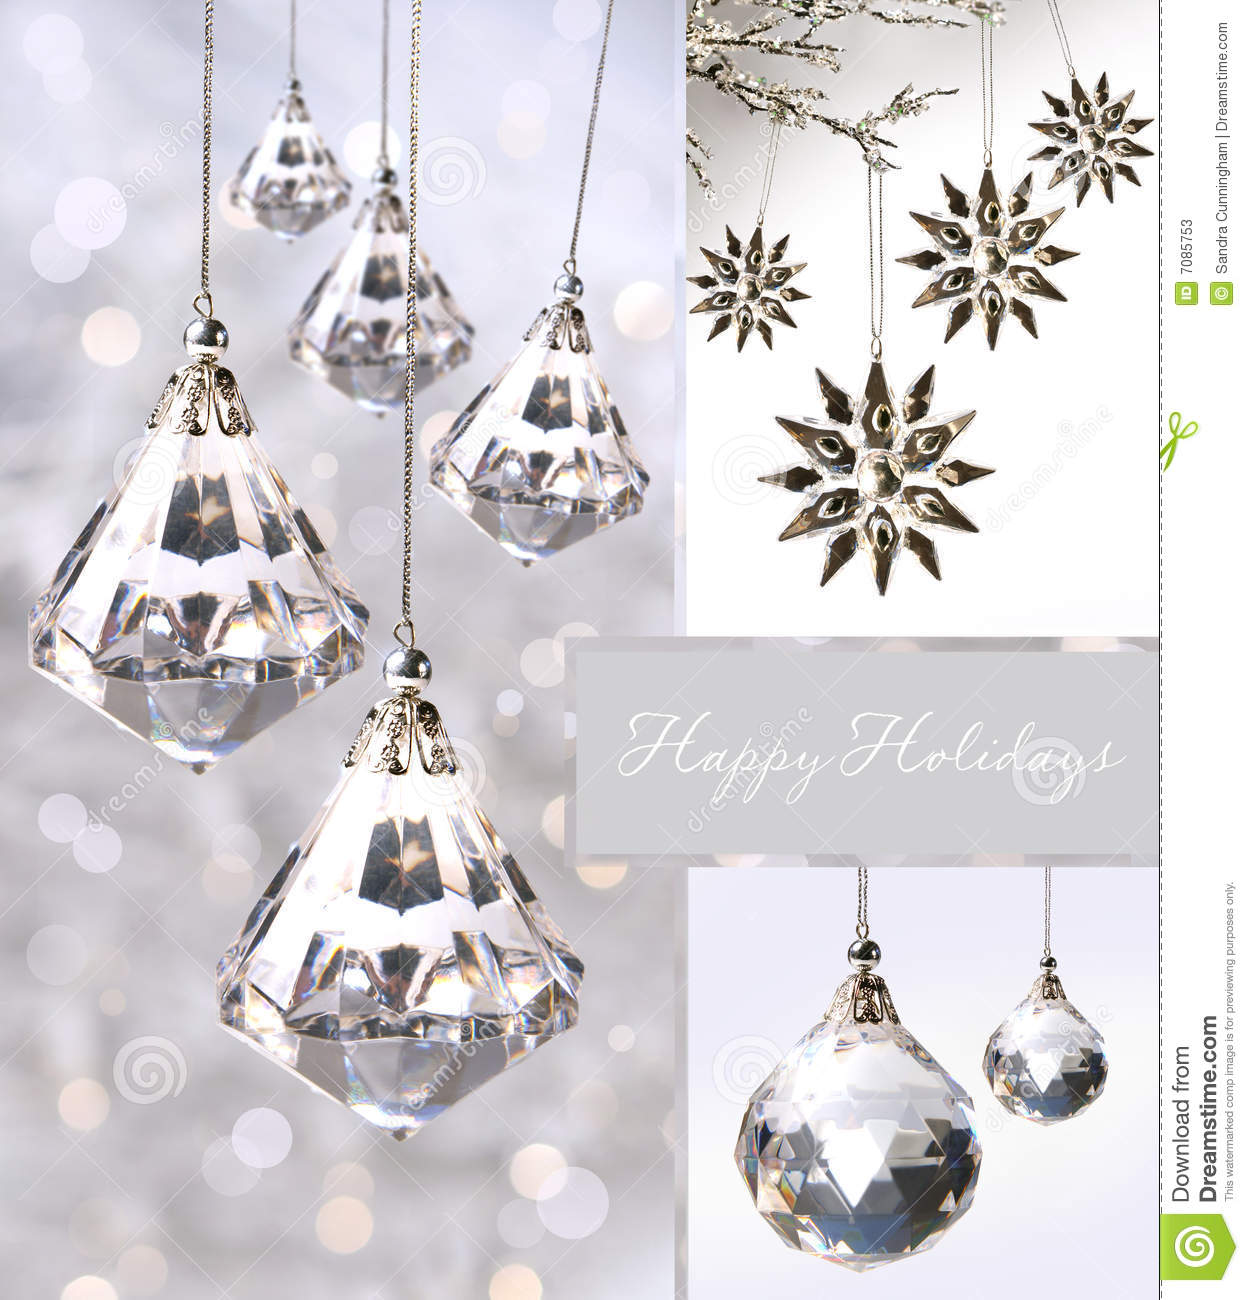 crystal christmas ornaments against silver - Crystal Christmas Decorations